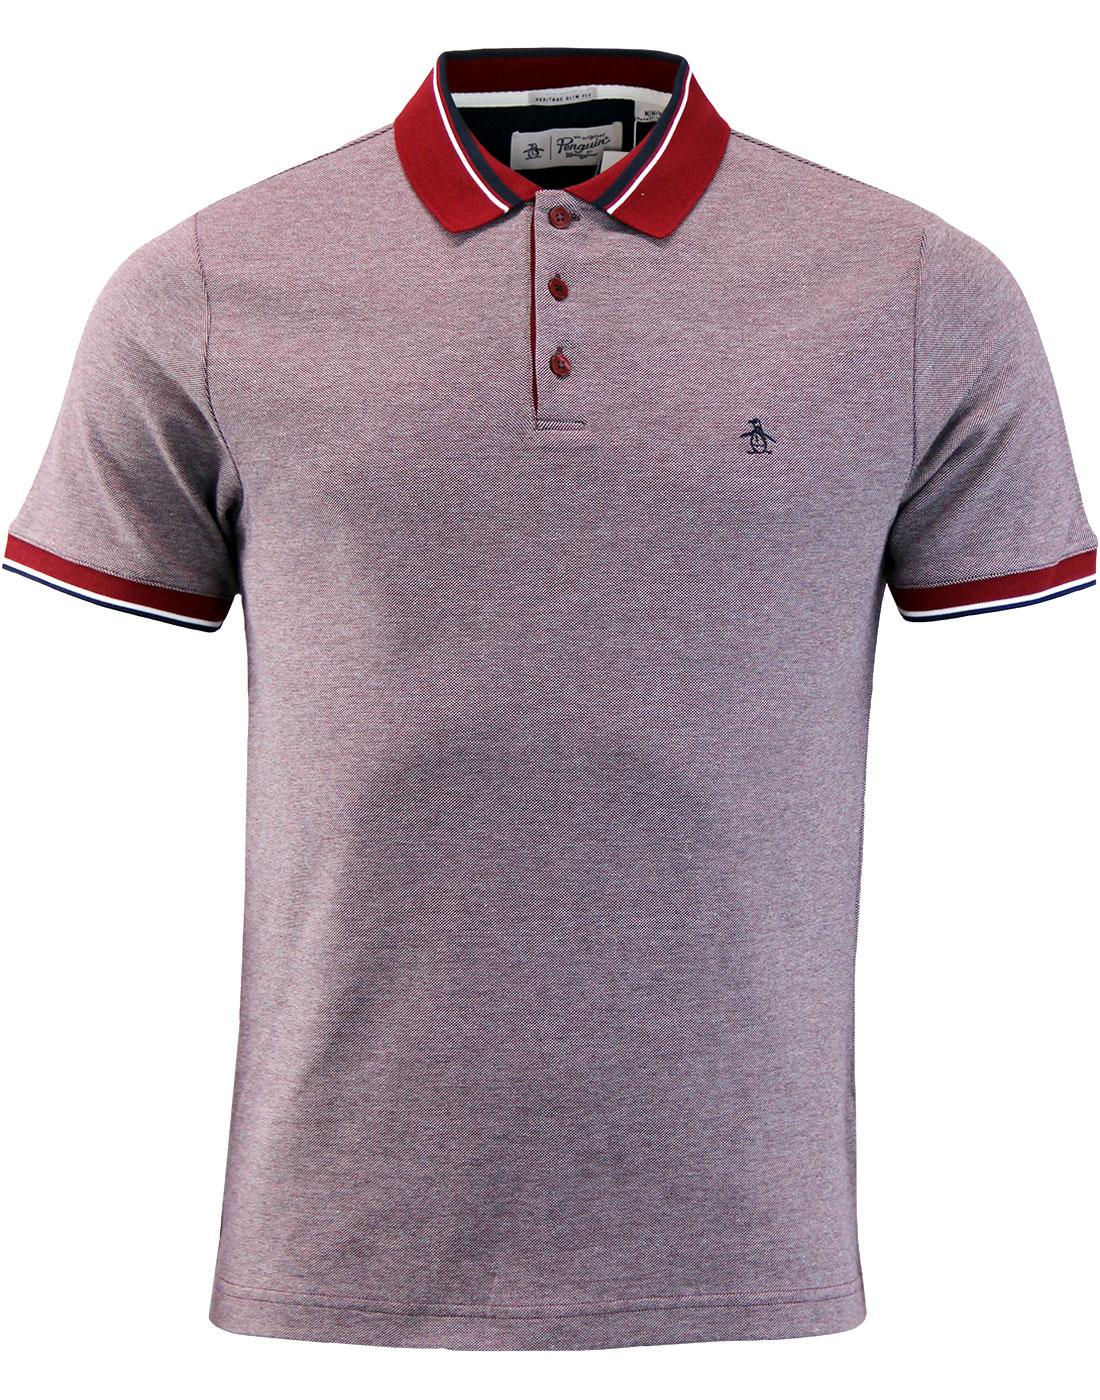 Tricolour Birdseye ORIGINAL PENGUIN Pique Polo Top